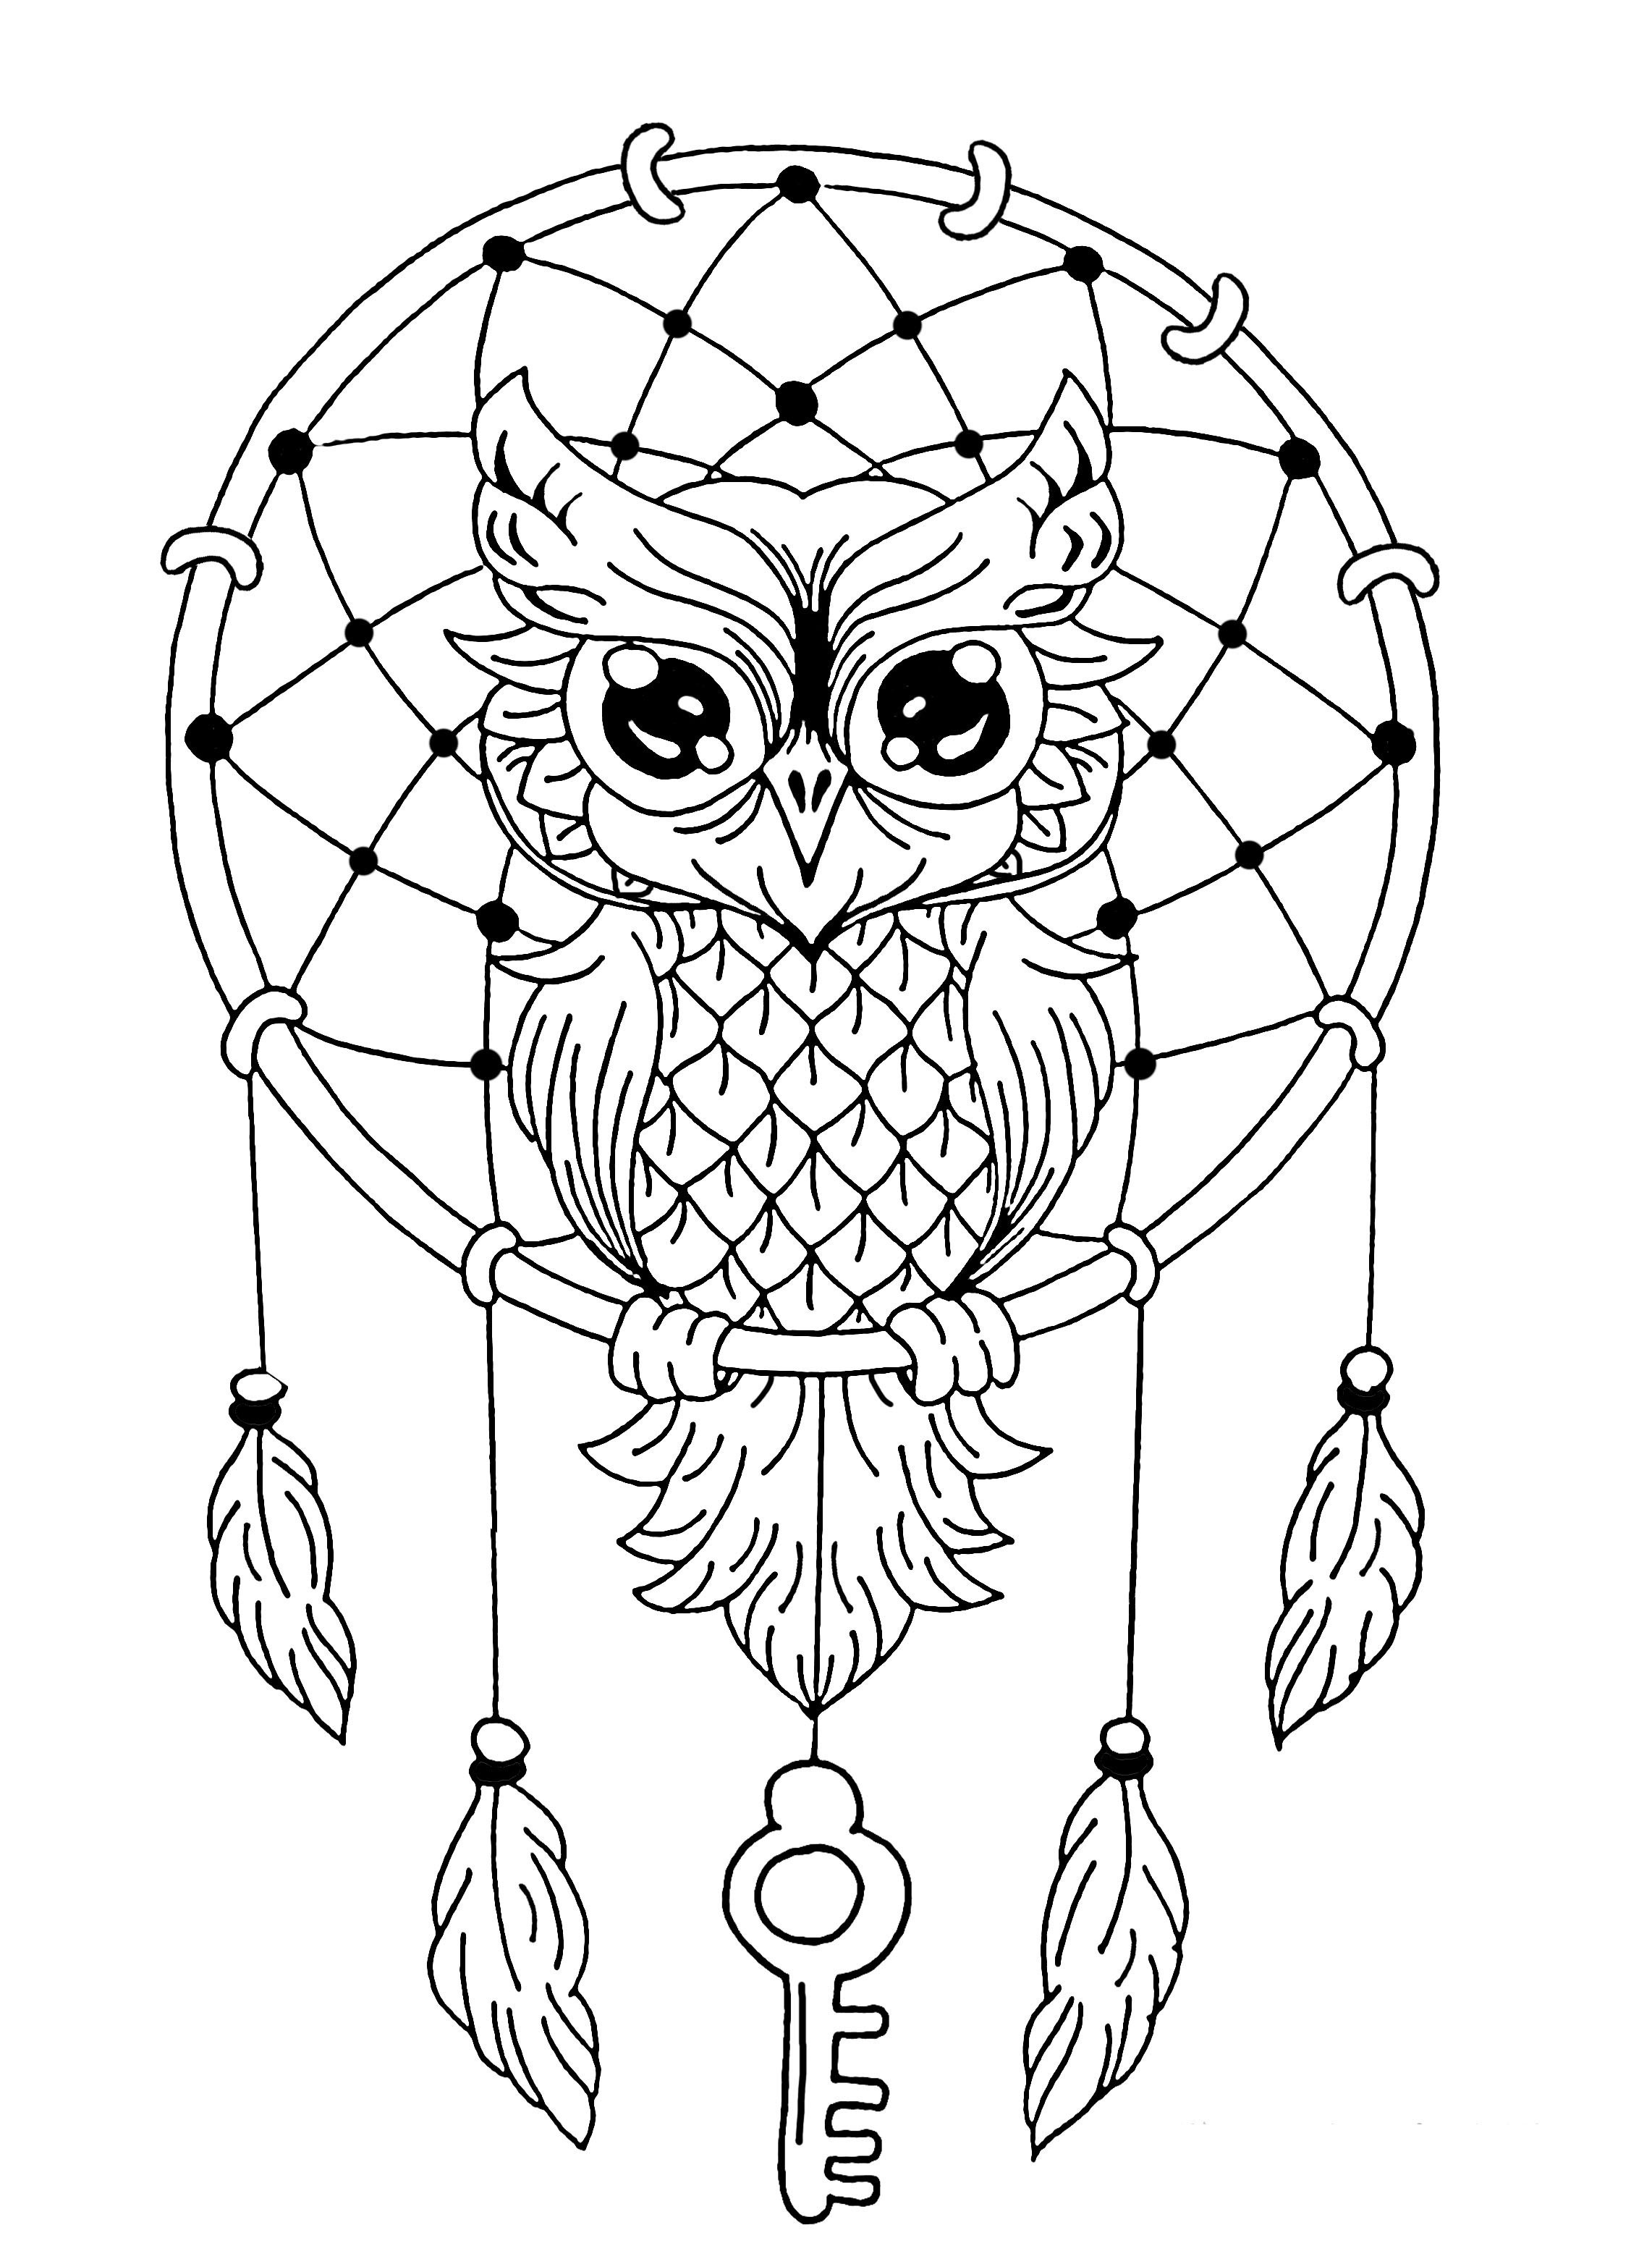 The Best Free Hipster Coloring Page Images Download From 93